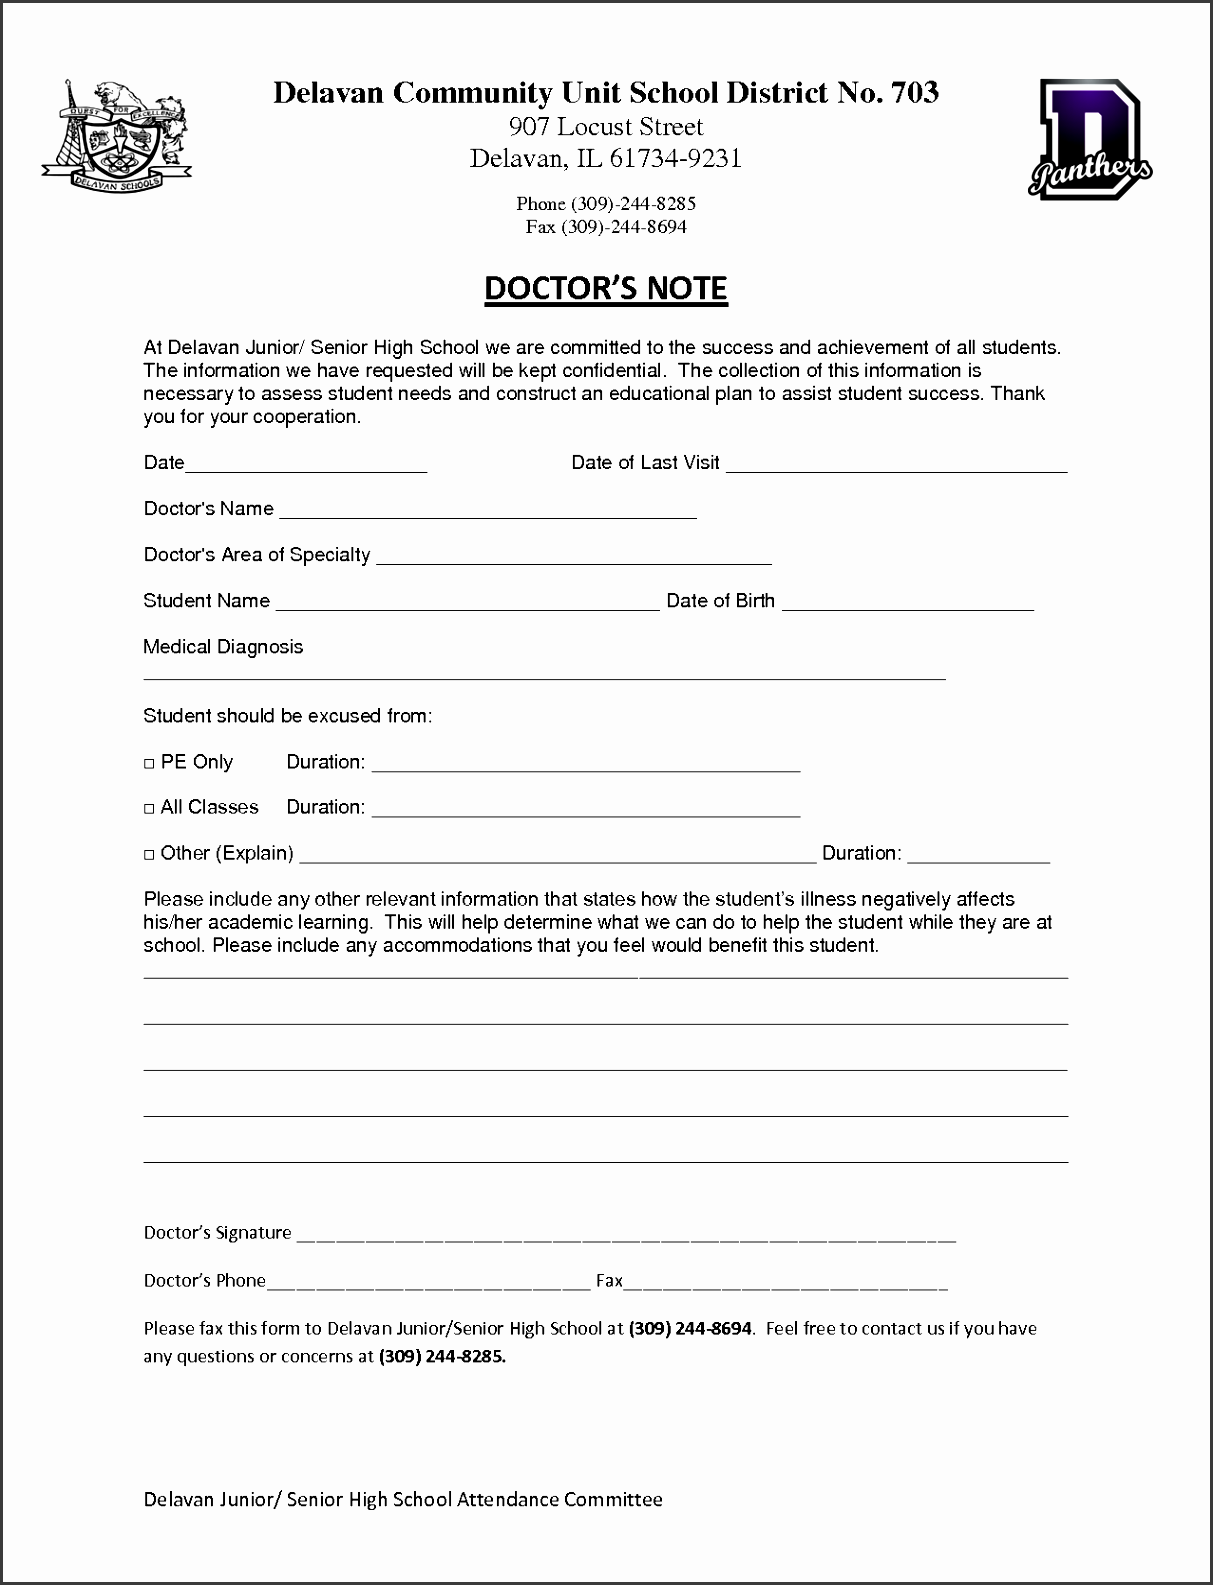 templates fake doctors note editable doctors note